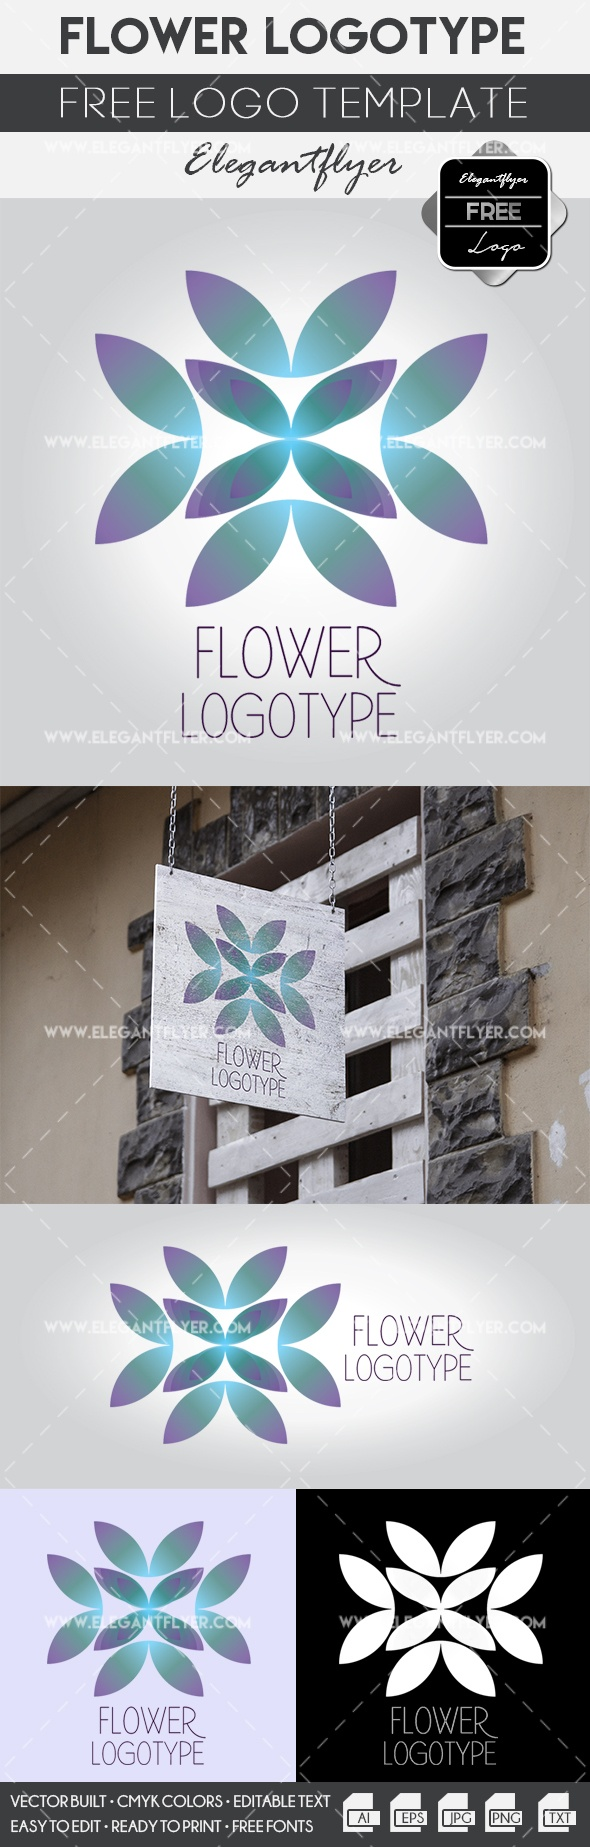 Company With Flower Logo Template